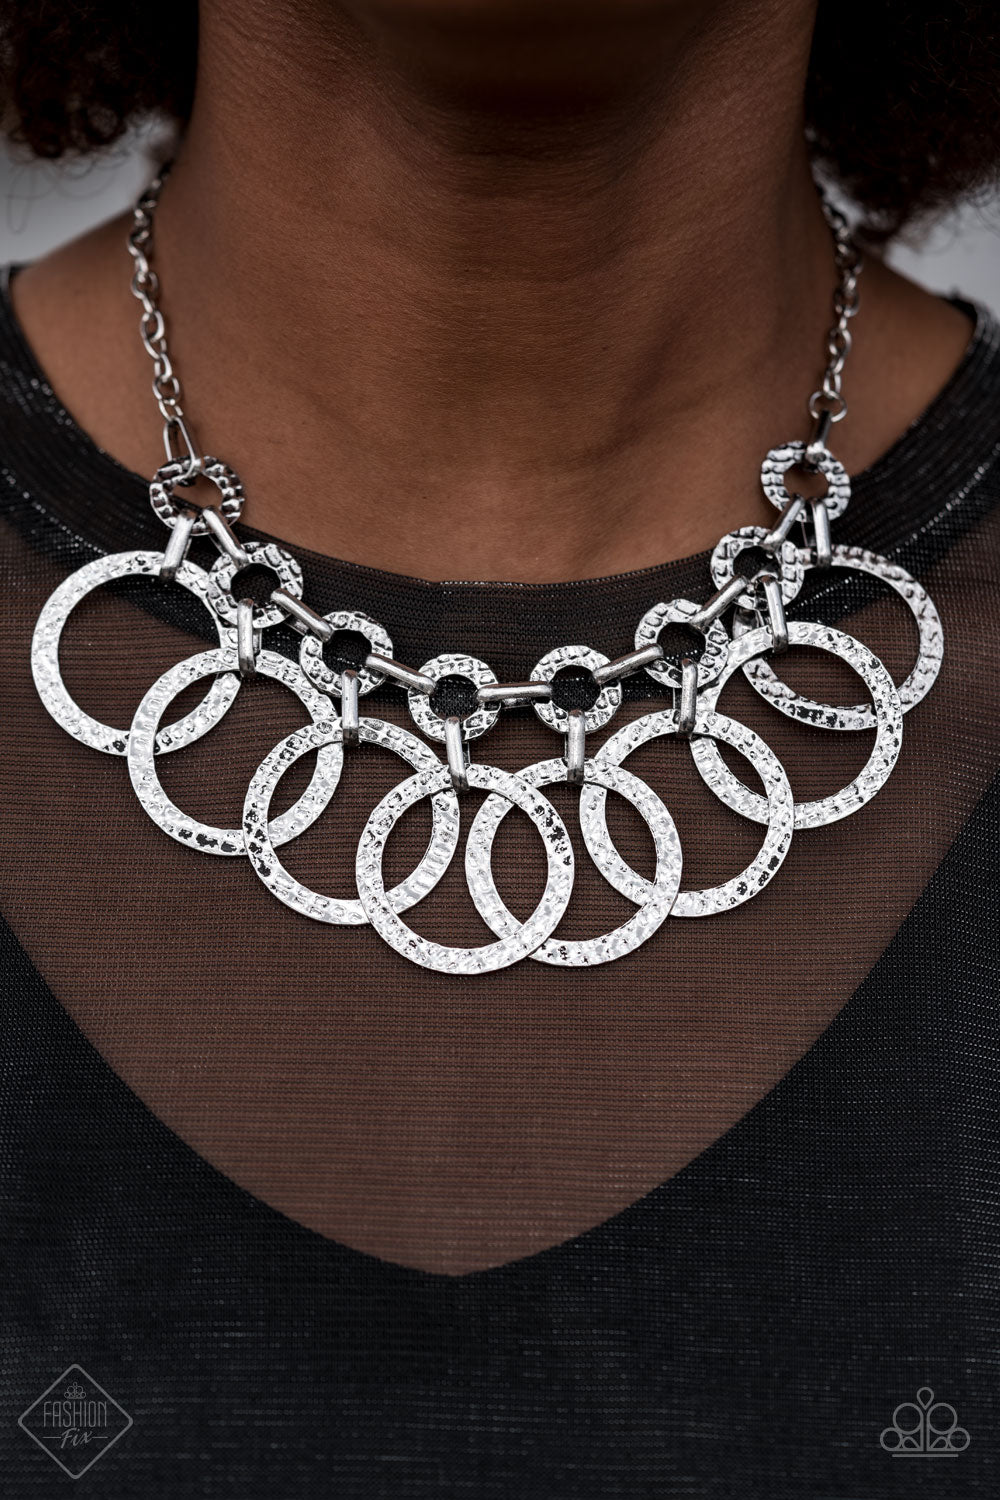 524d5ae78f53f Load image into Gallery viewer, Magnificent Musings - Fashion Fix - June  2019 - Necklace ...